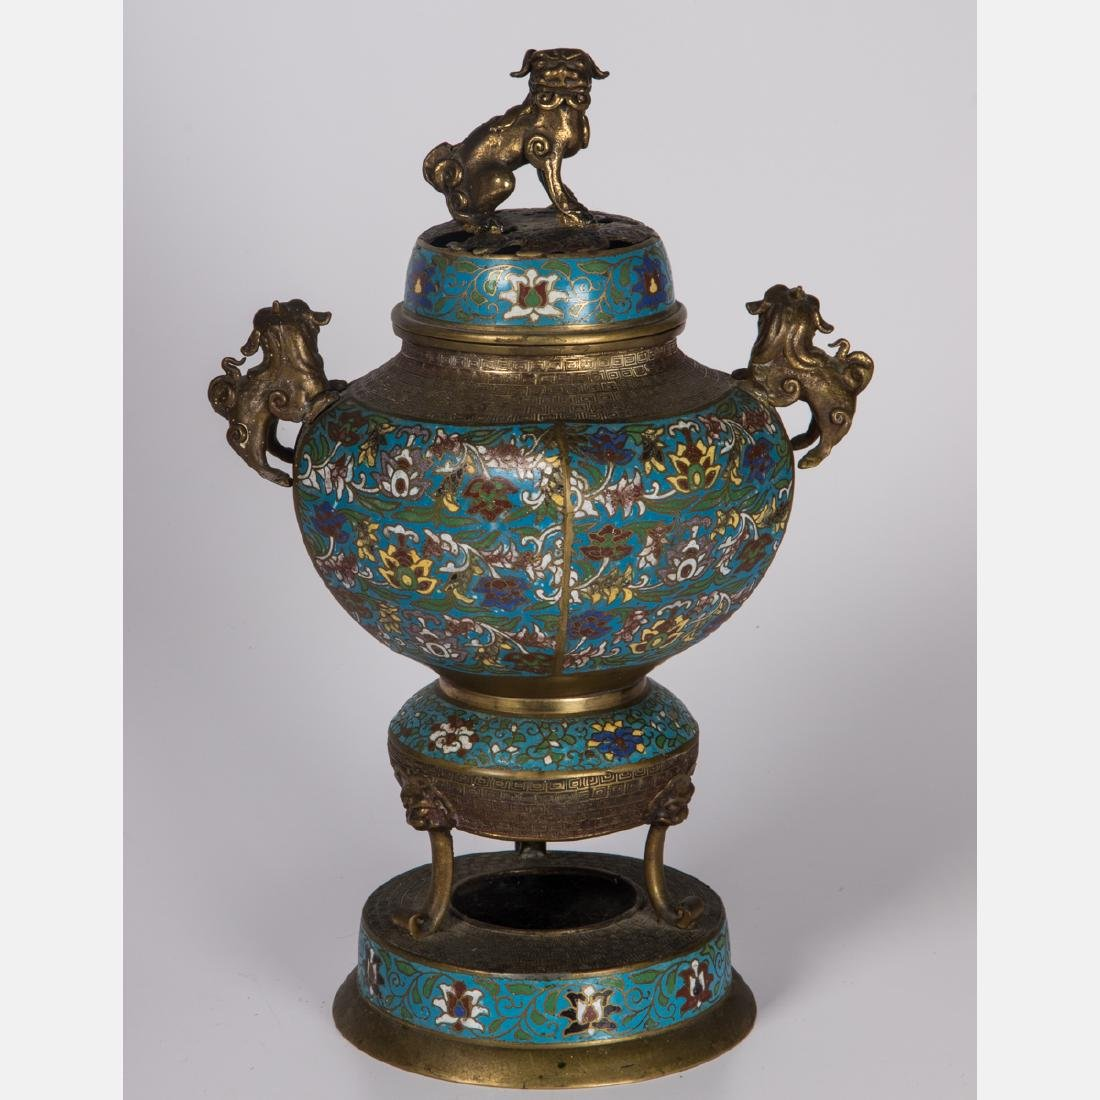 A Chinese Brass and Cloisonné Censer, 20th Century,